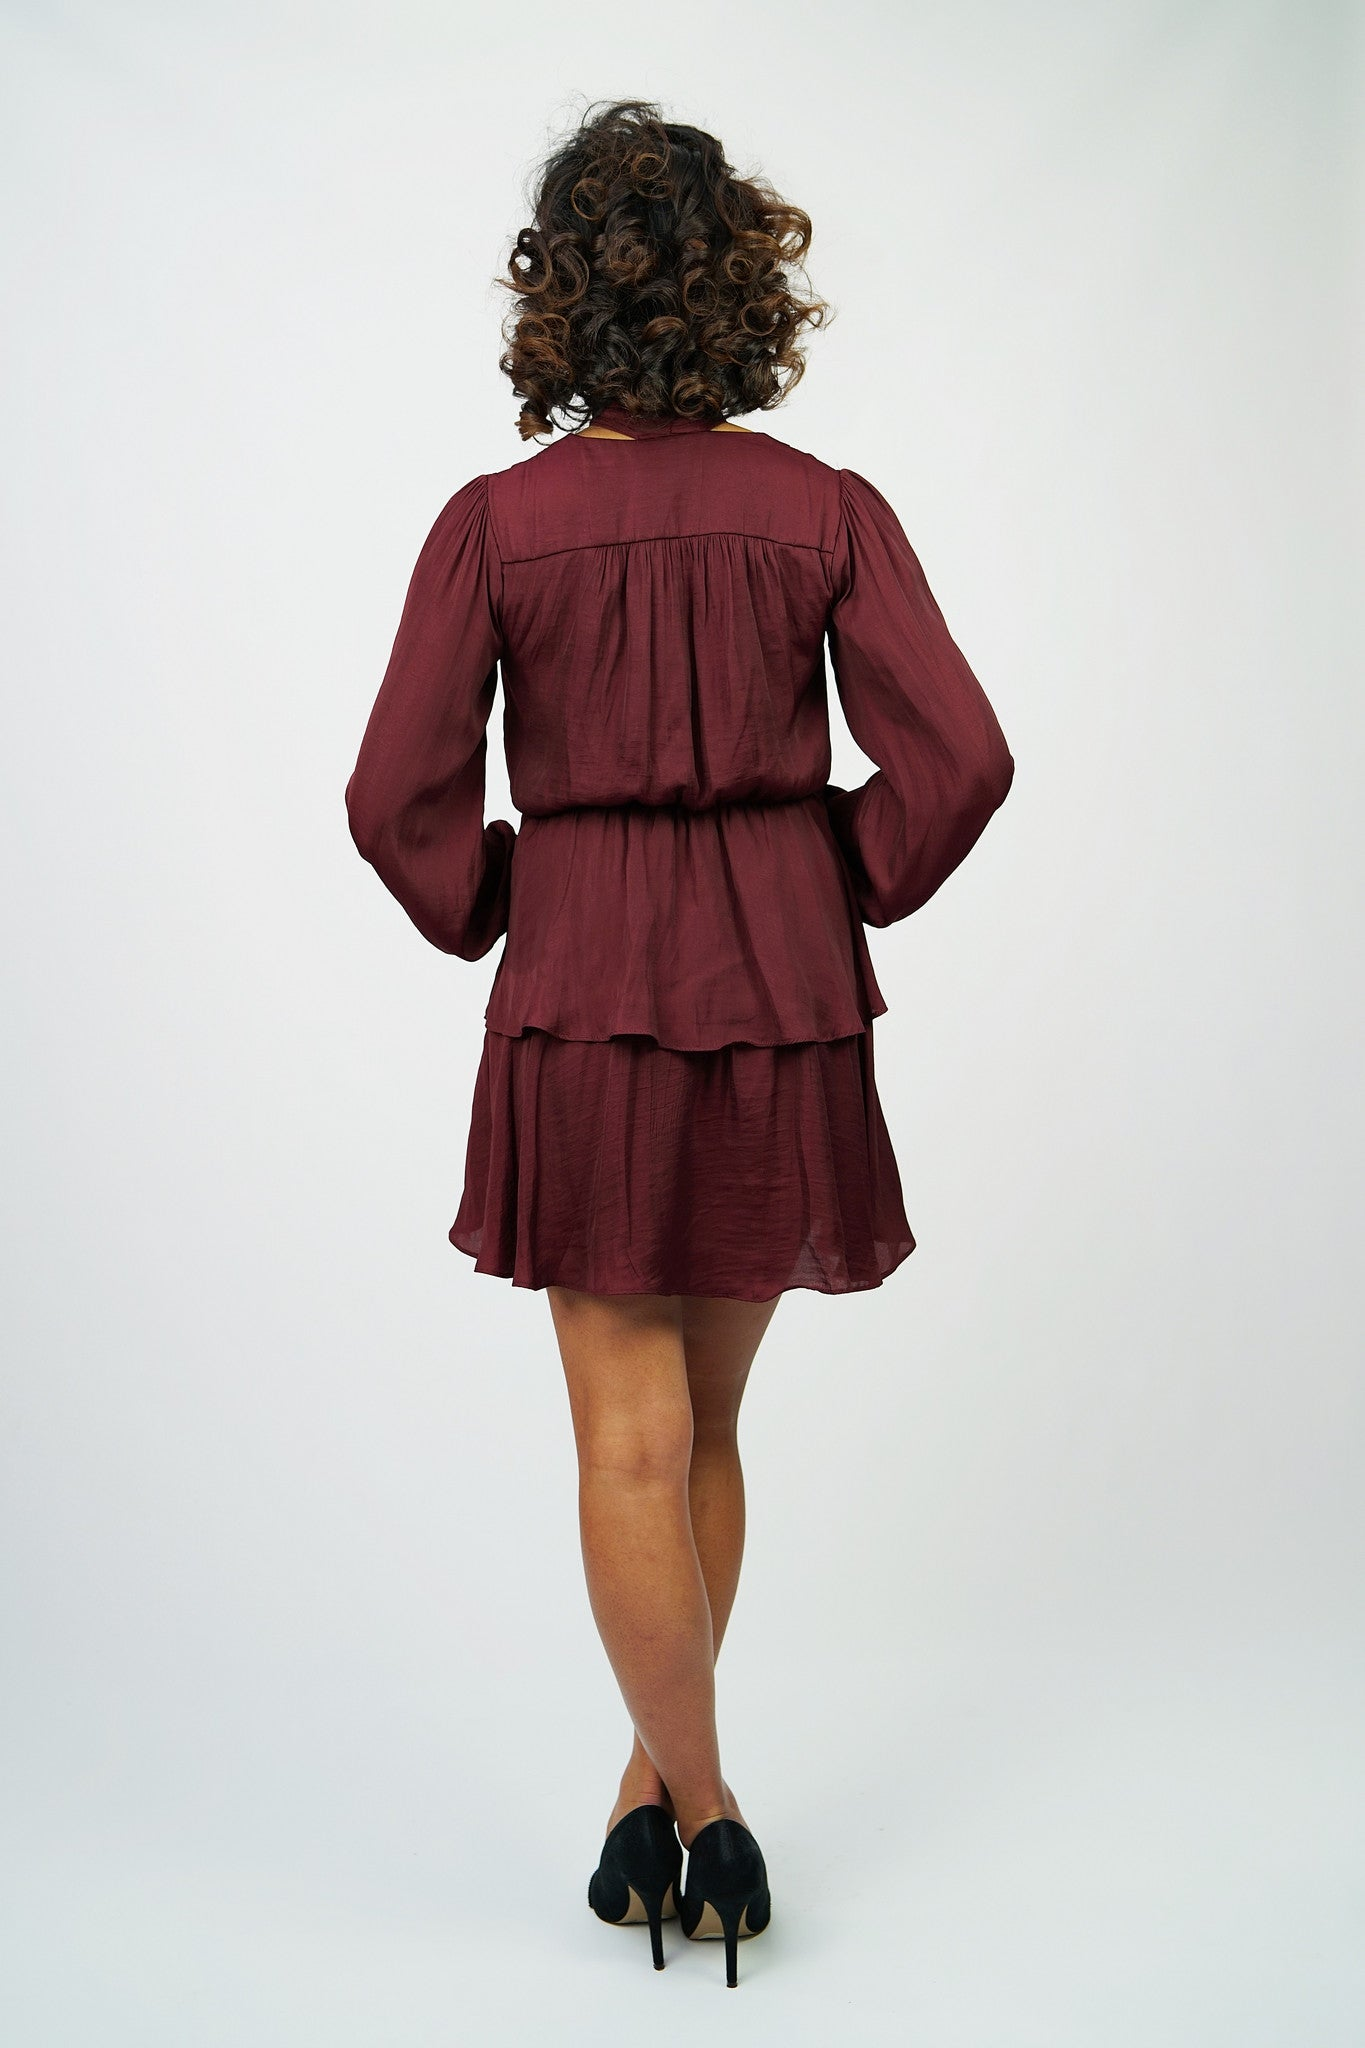 Ruffle cocktail dress